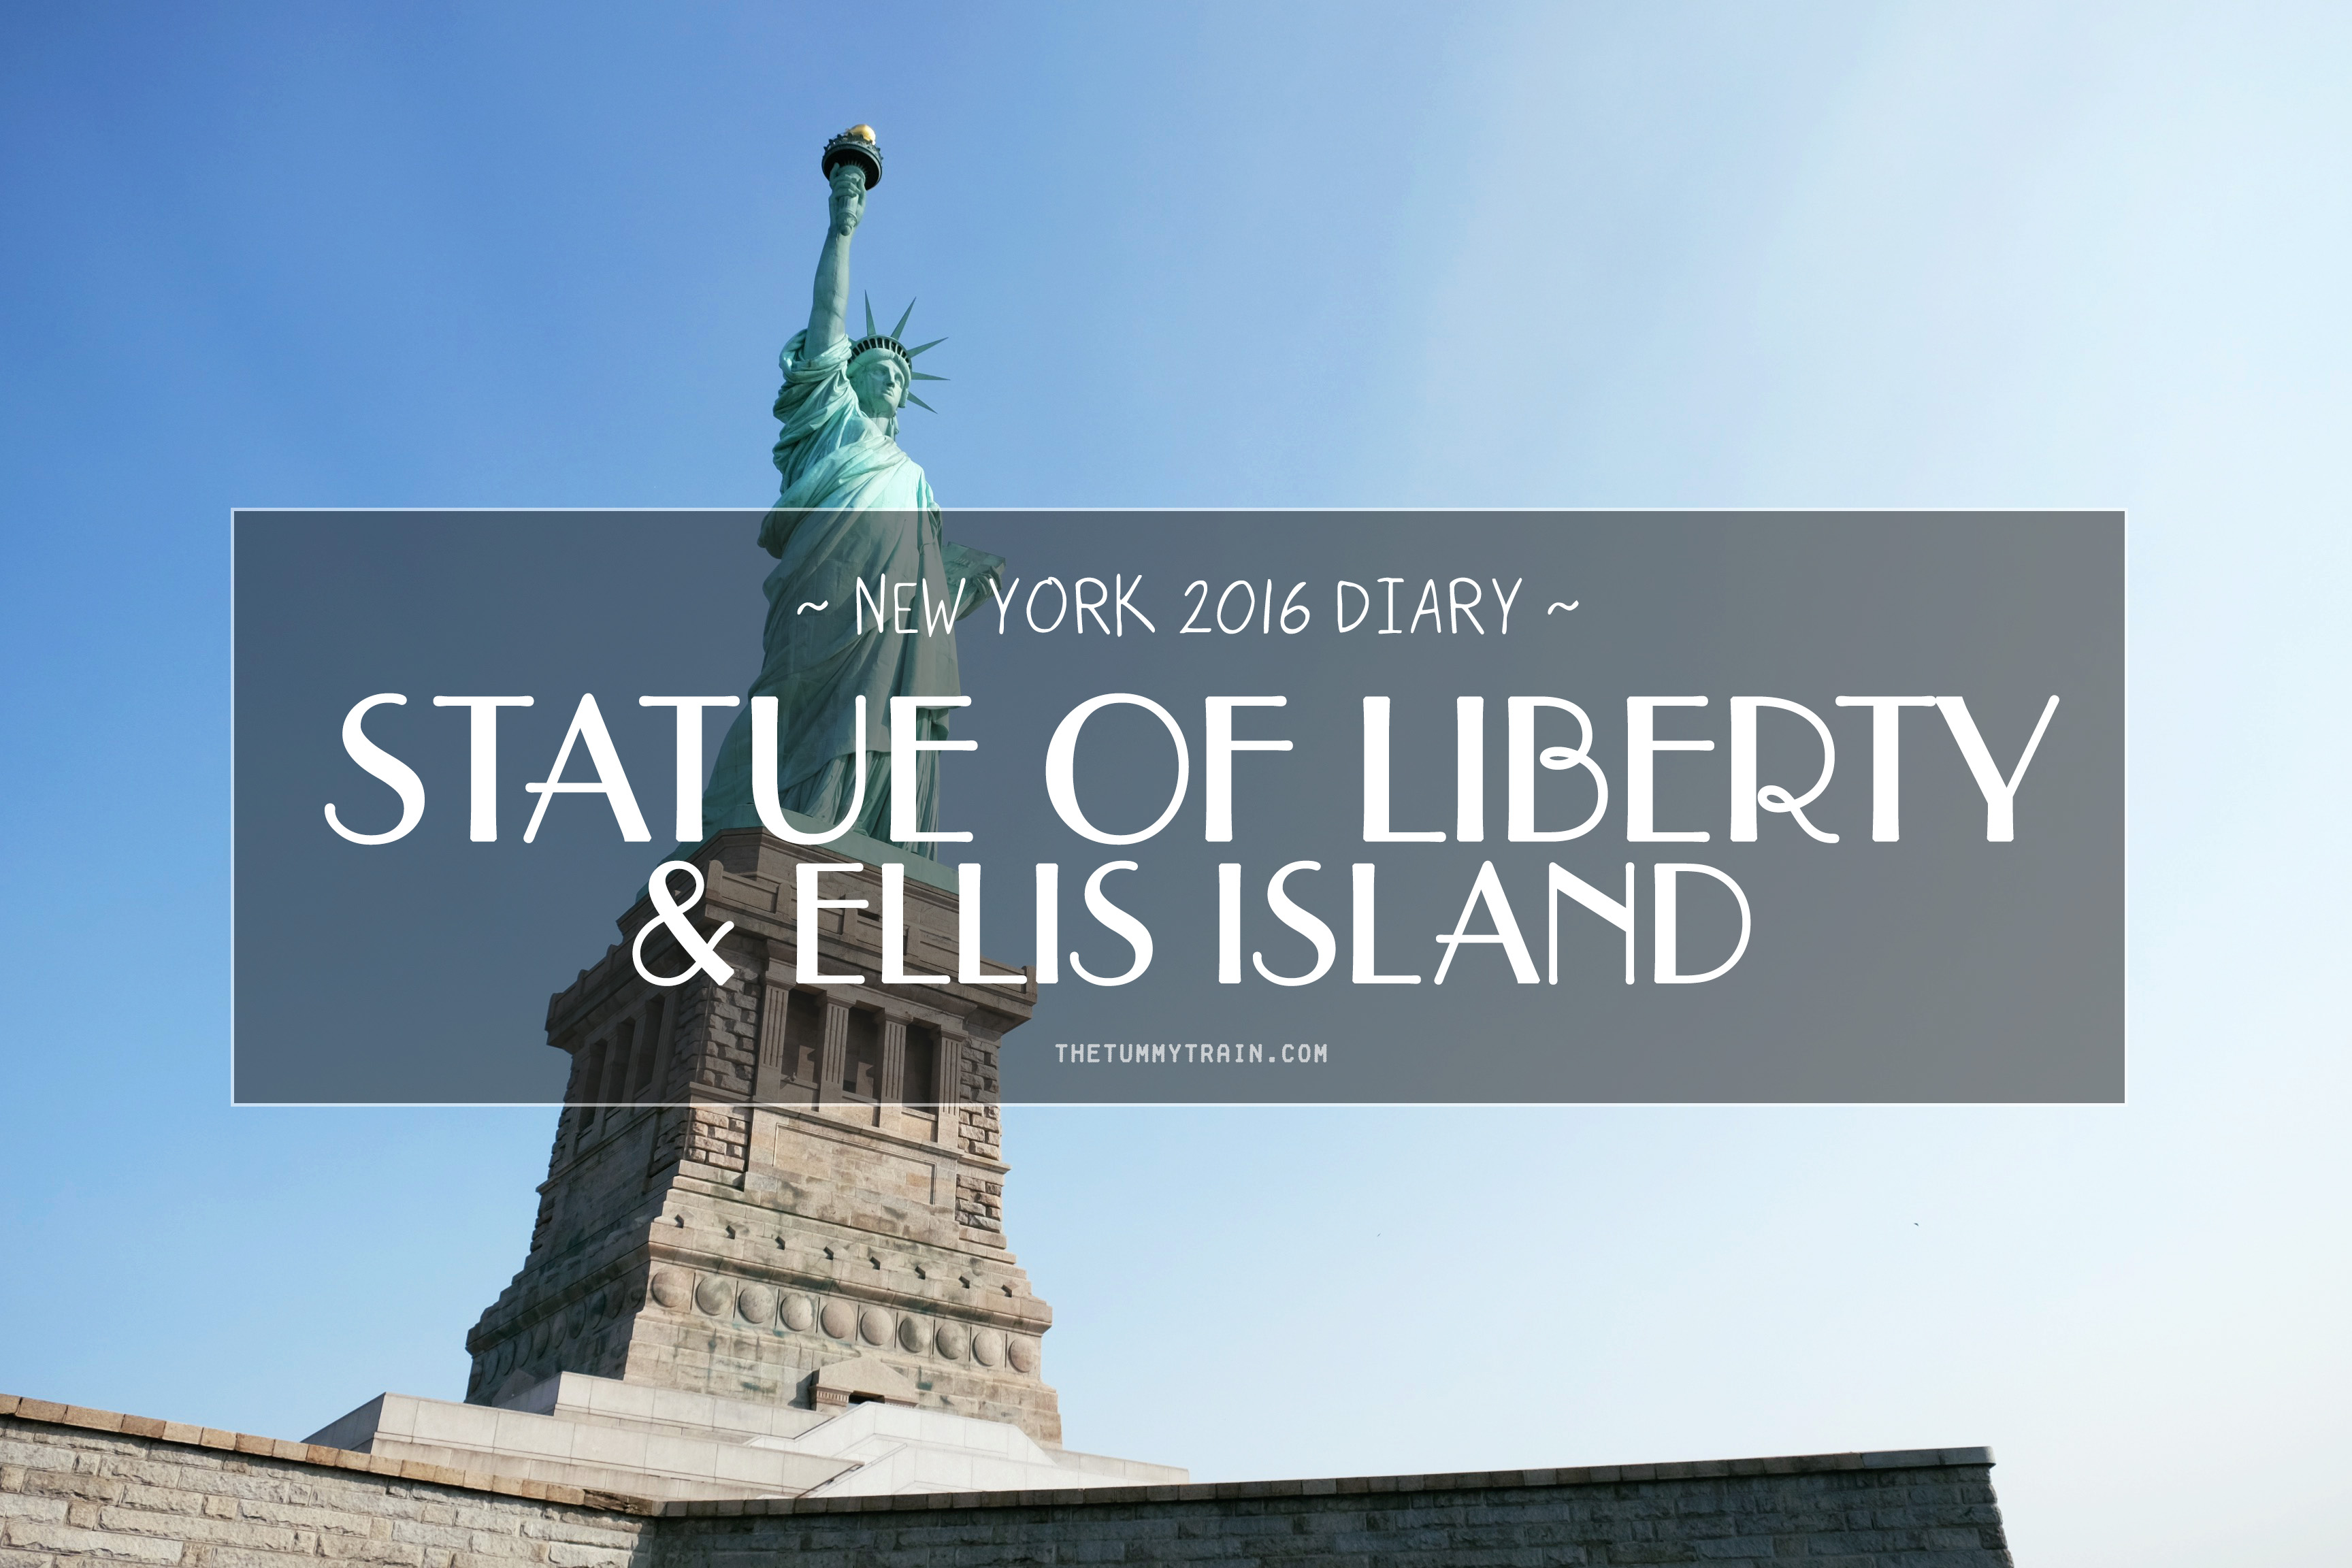 Usa 2016 travel diary behold the statue of liberty usa 2016 travel diary behold the statue of liberty ellis island buycottarizona Gallery